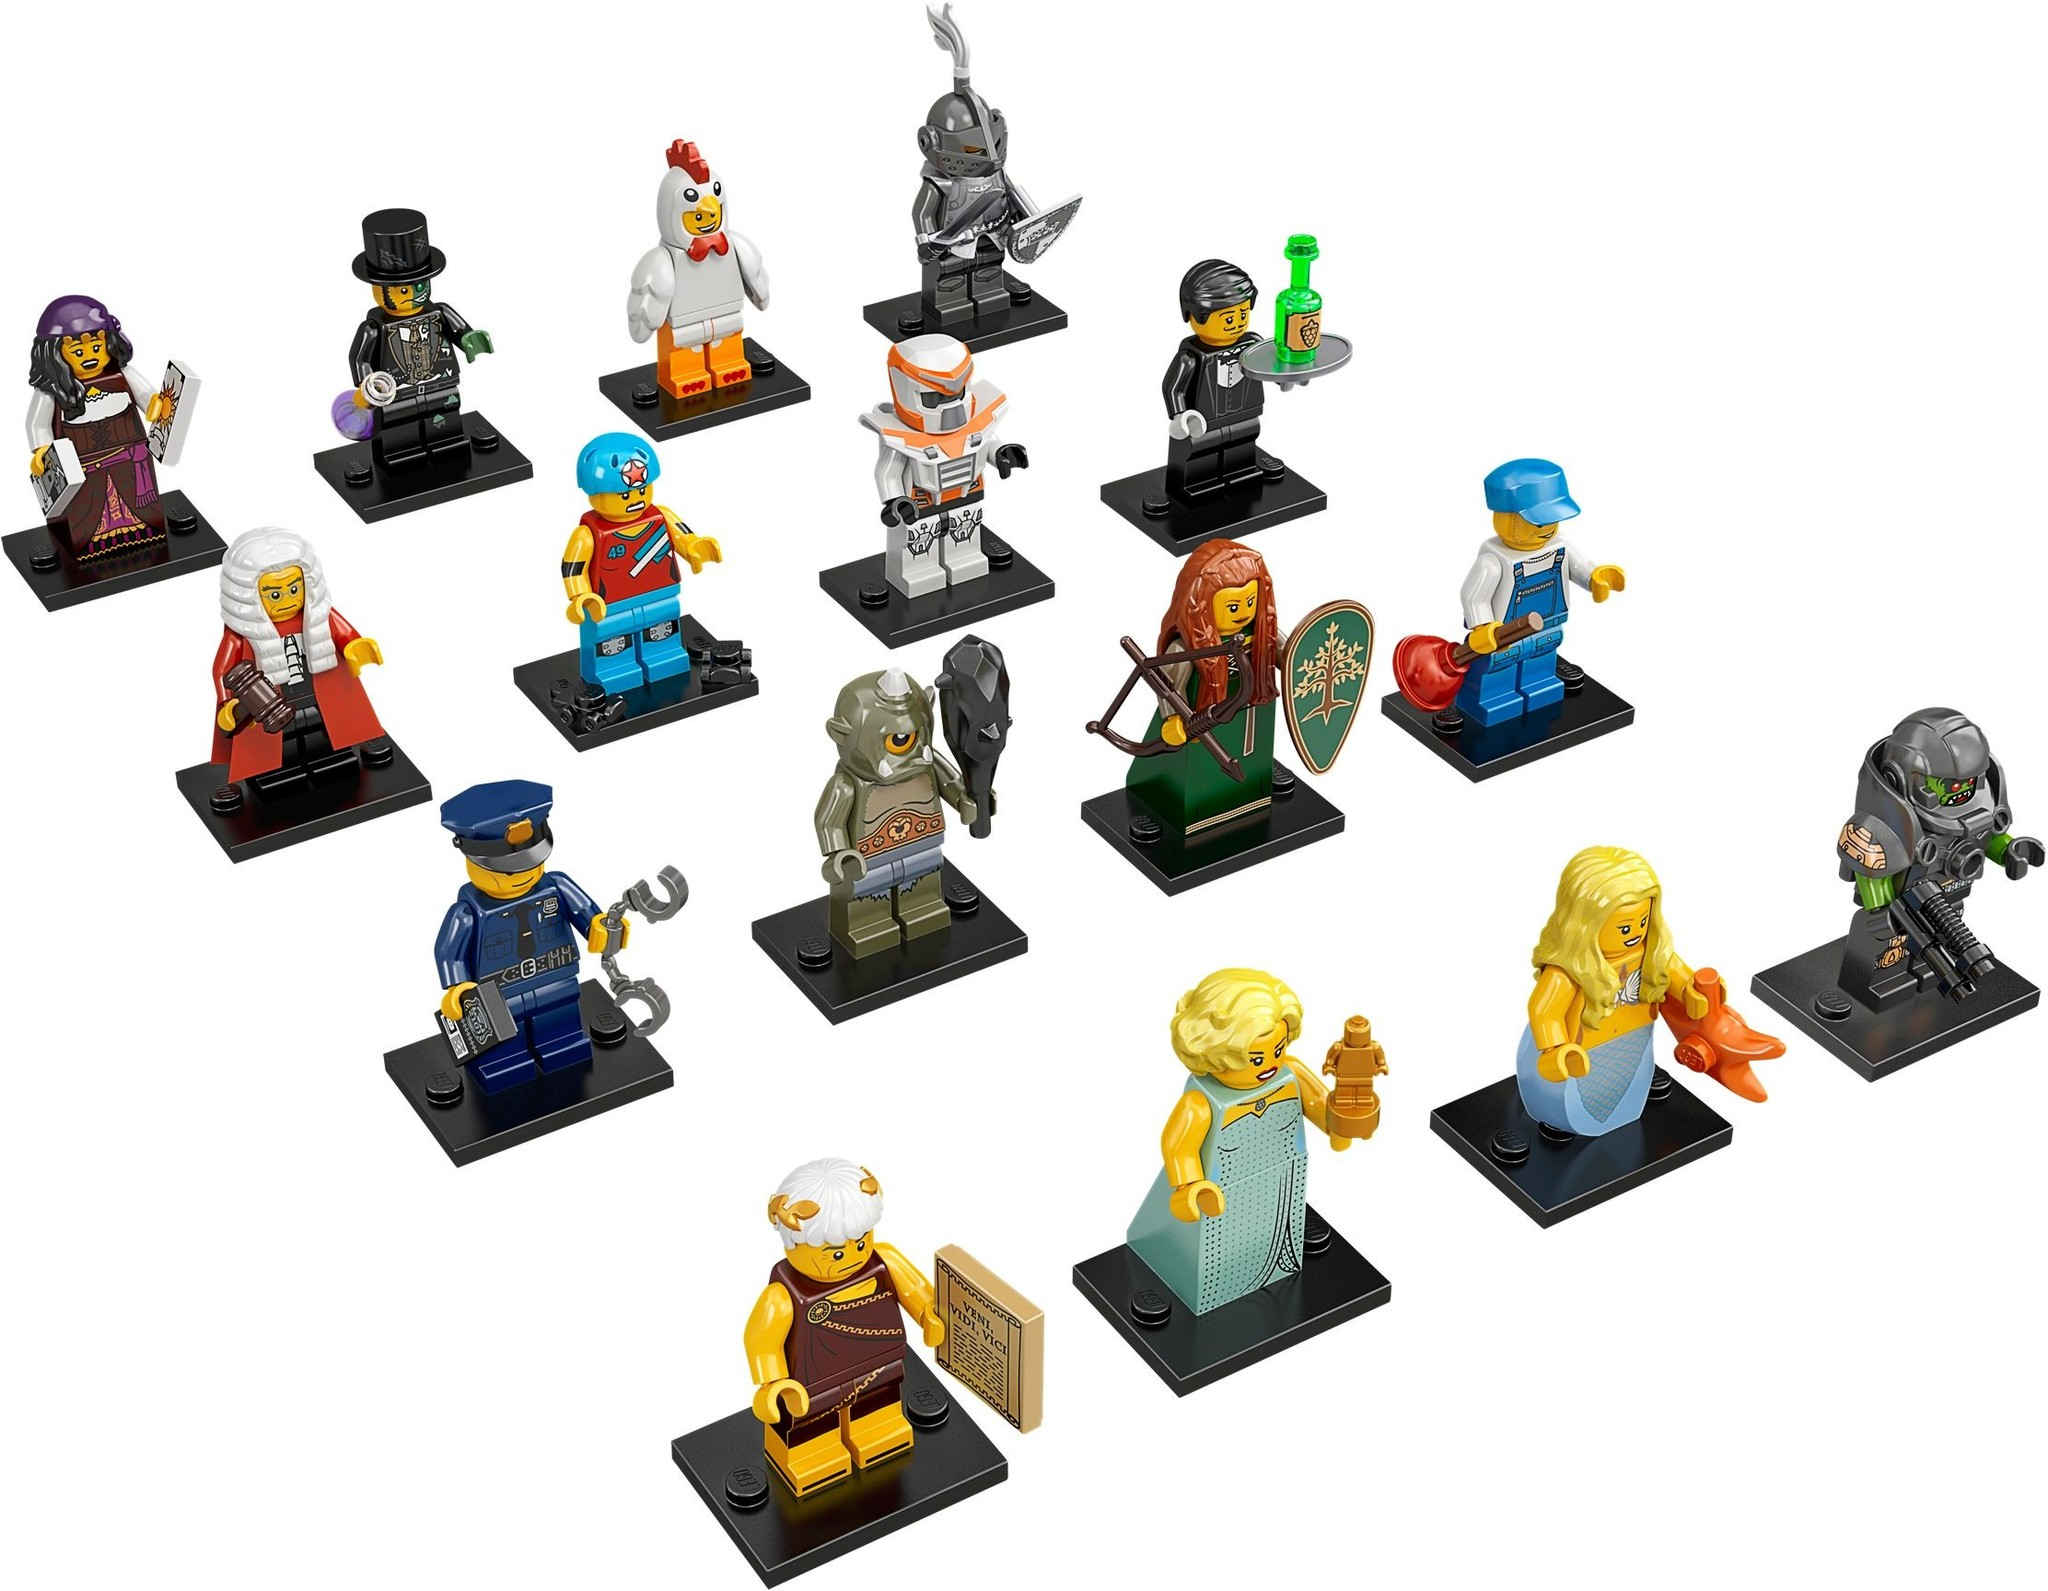 LEGO 71000 - LEGO Minifigures Series 9 Complete Full Set (16 pcs) MISP